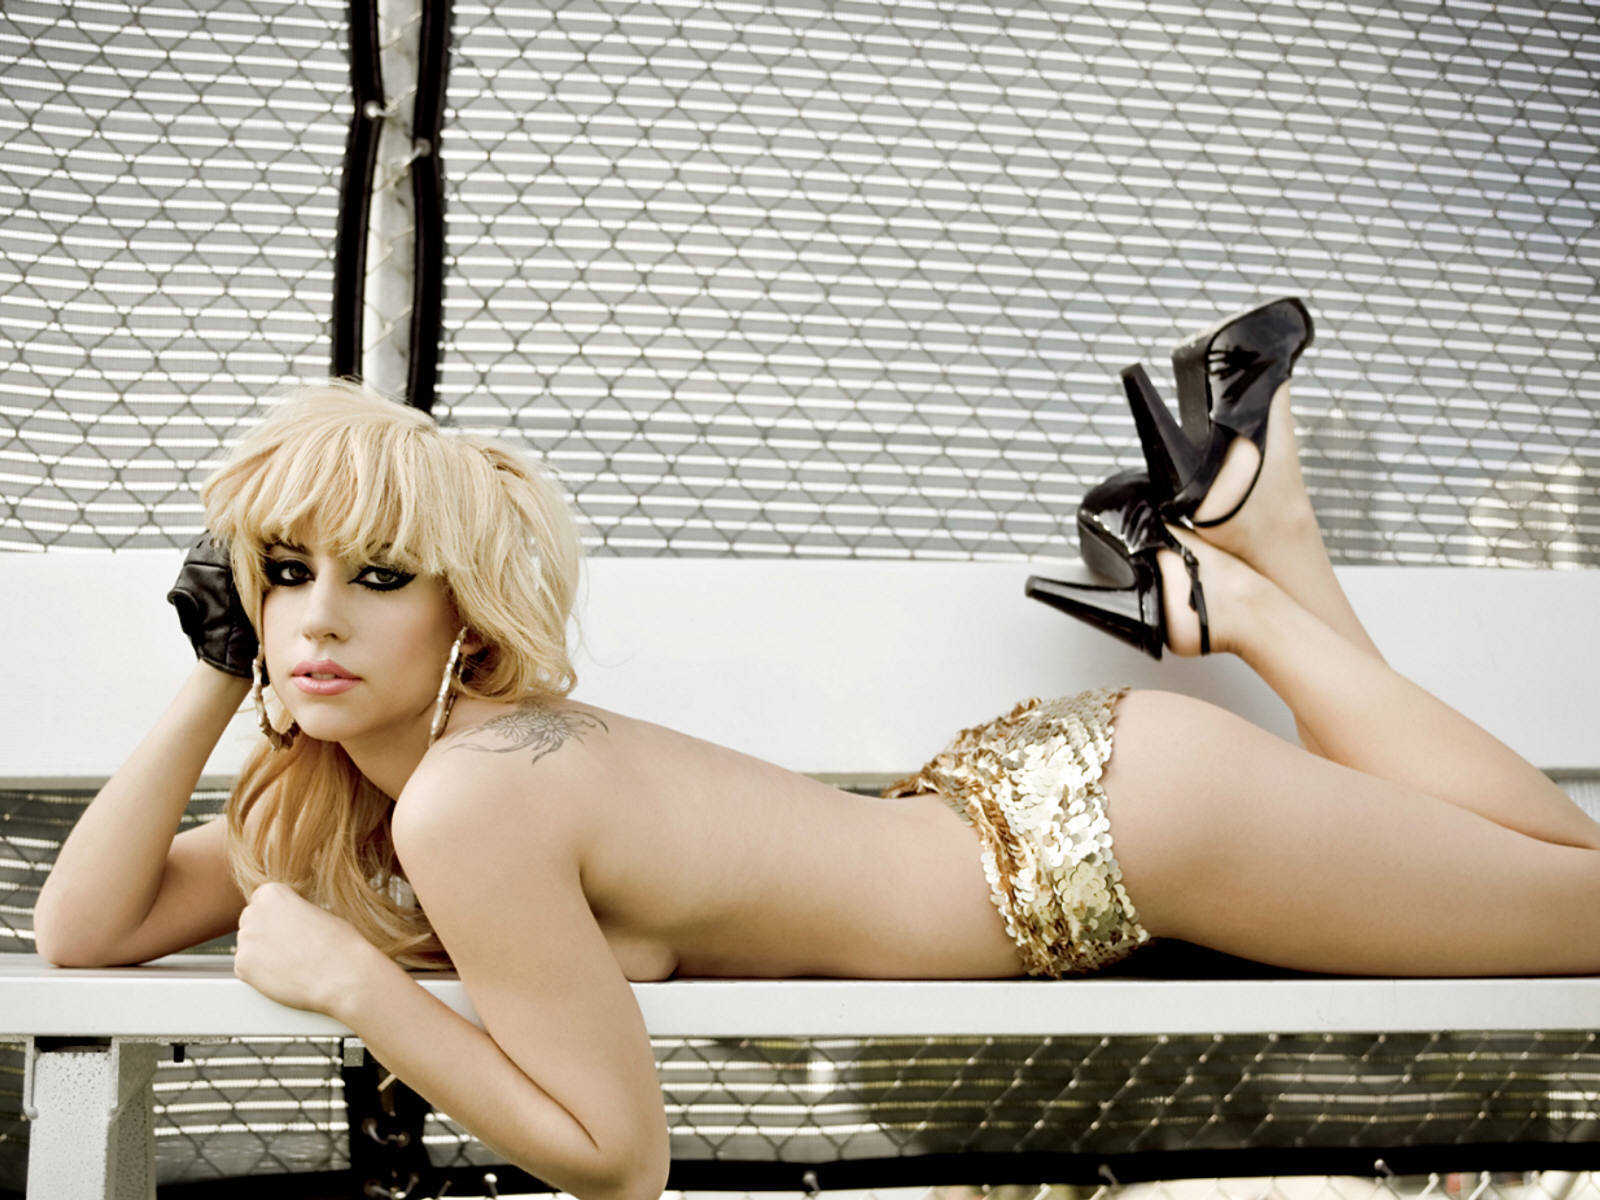 http://images2.fanpop.com/image/photos/10600000/Sexy-Lady-Gaga-Wallpaper-lady-gaga-10606475-1600-1200.jpg